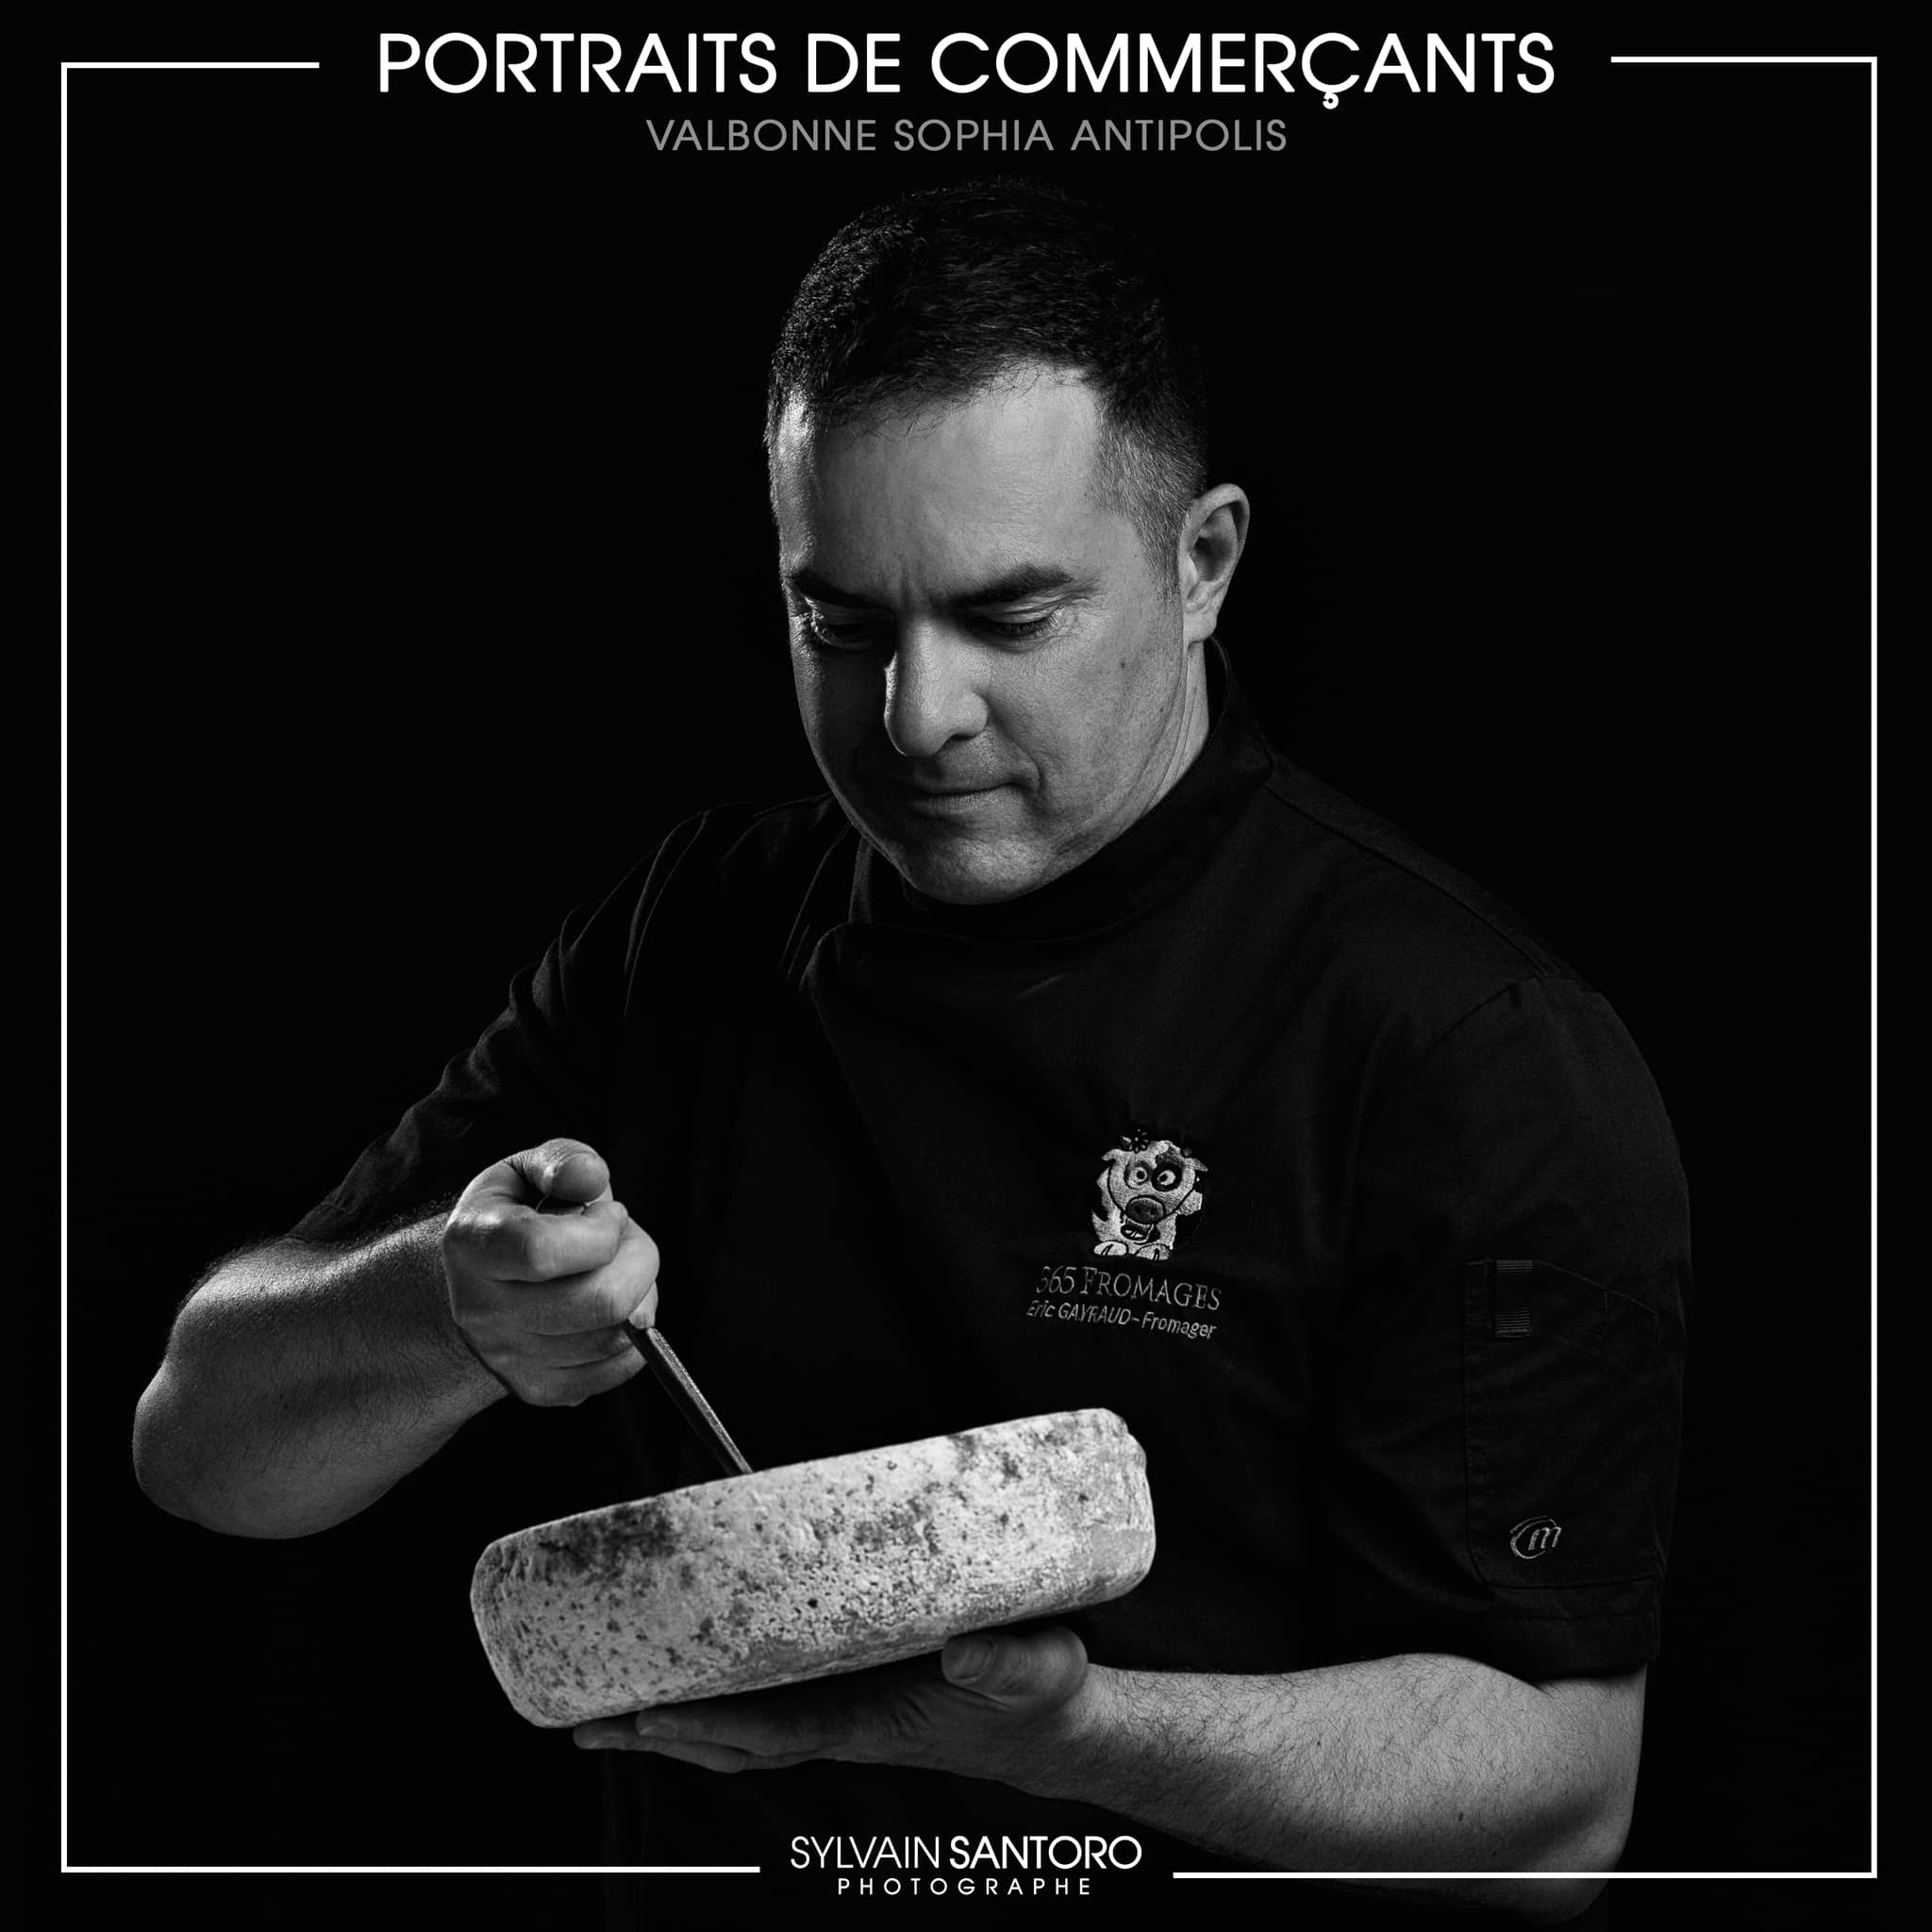 Portraits de Commerçants : 365 Fromages